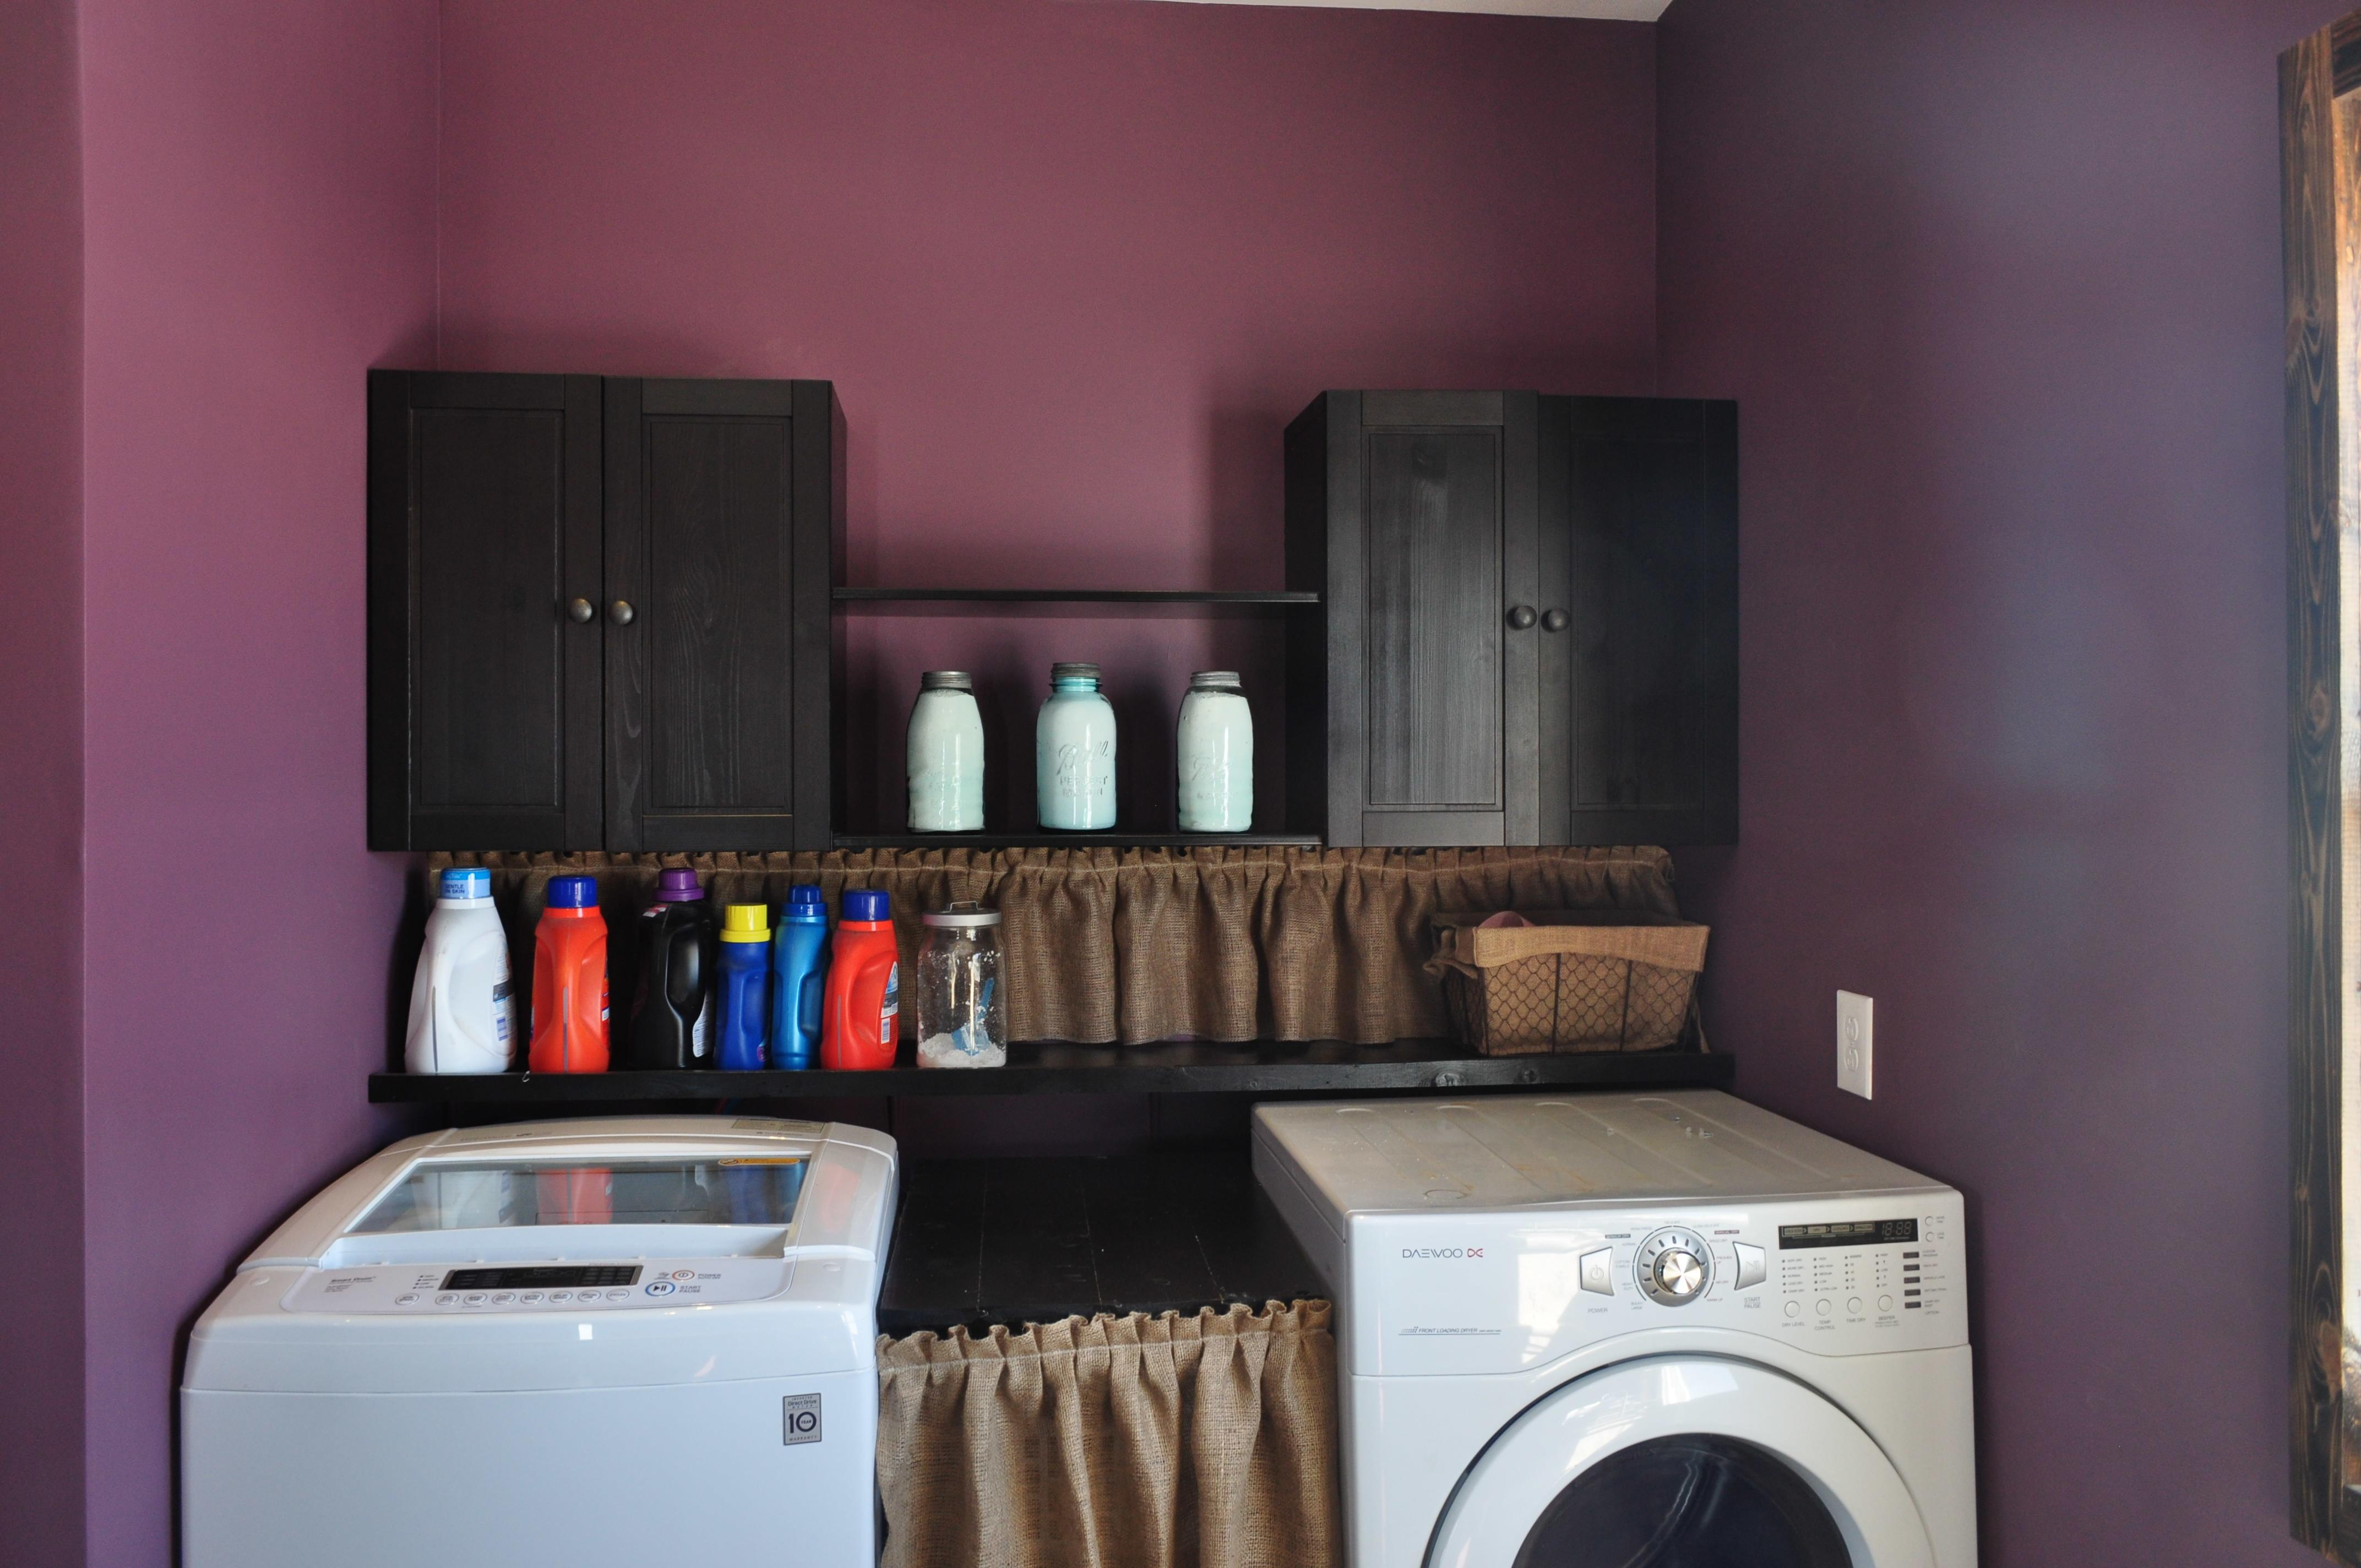 Laundry Room Cabinets Awesome Innovative Home Design